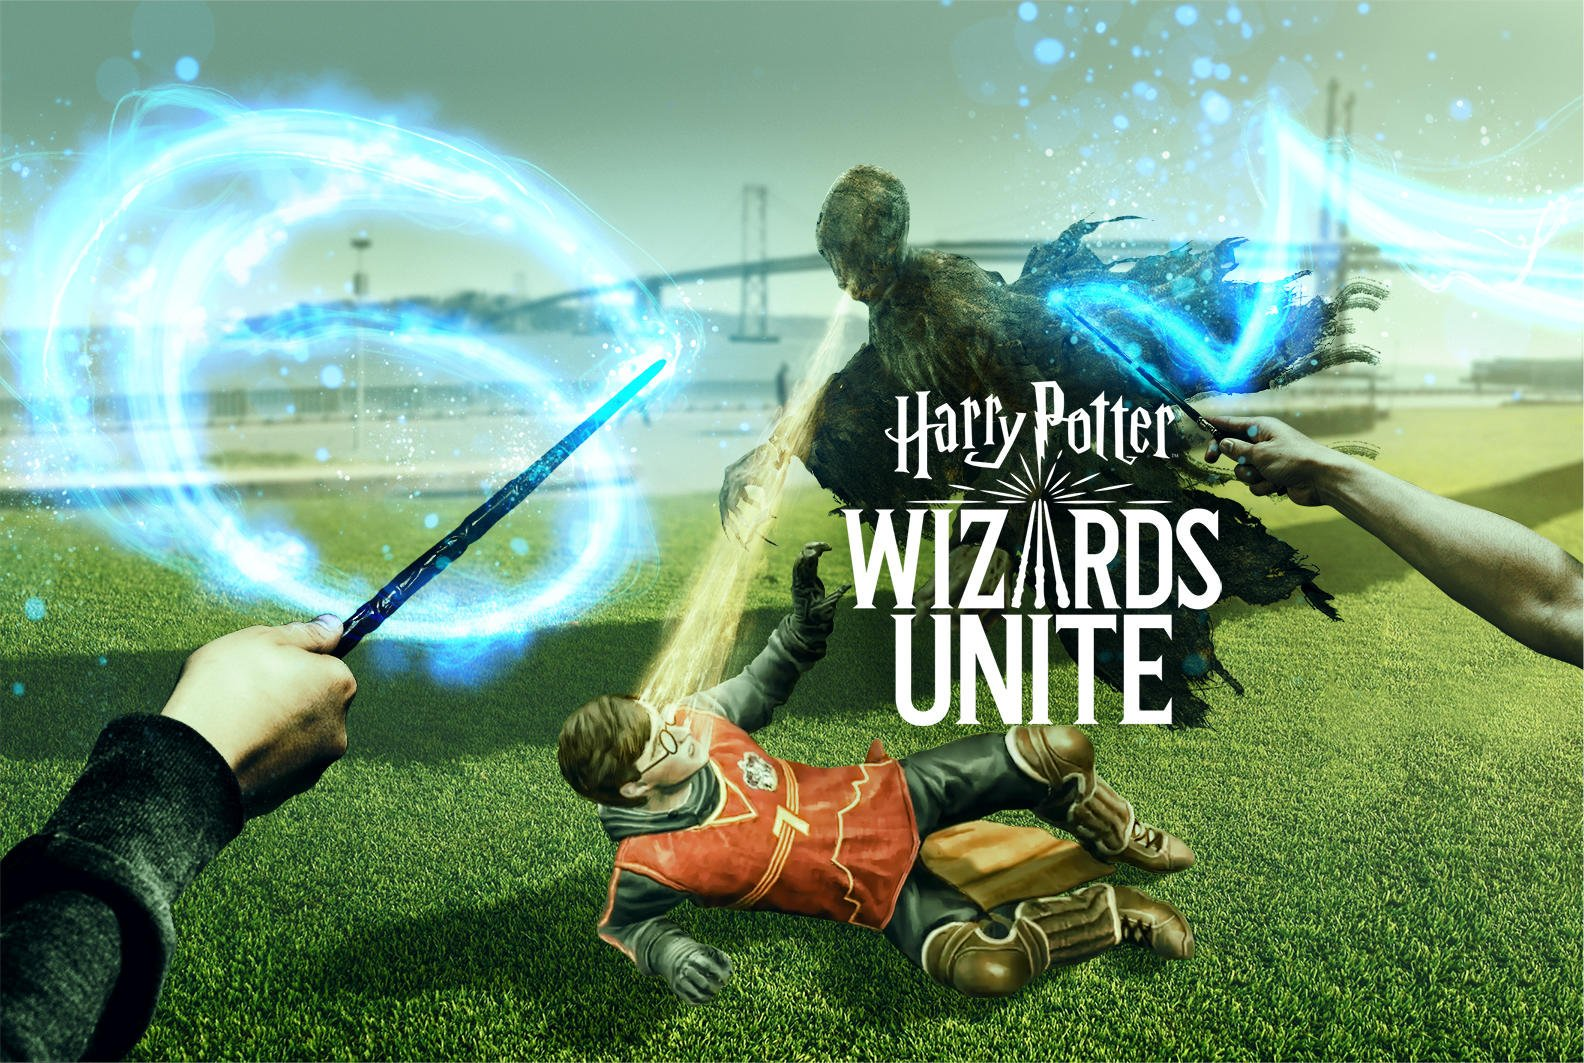 harry potter wizards unite featured image art 1.jpg